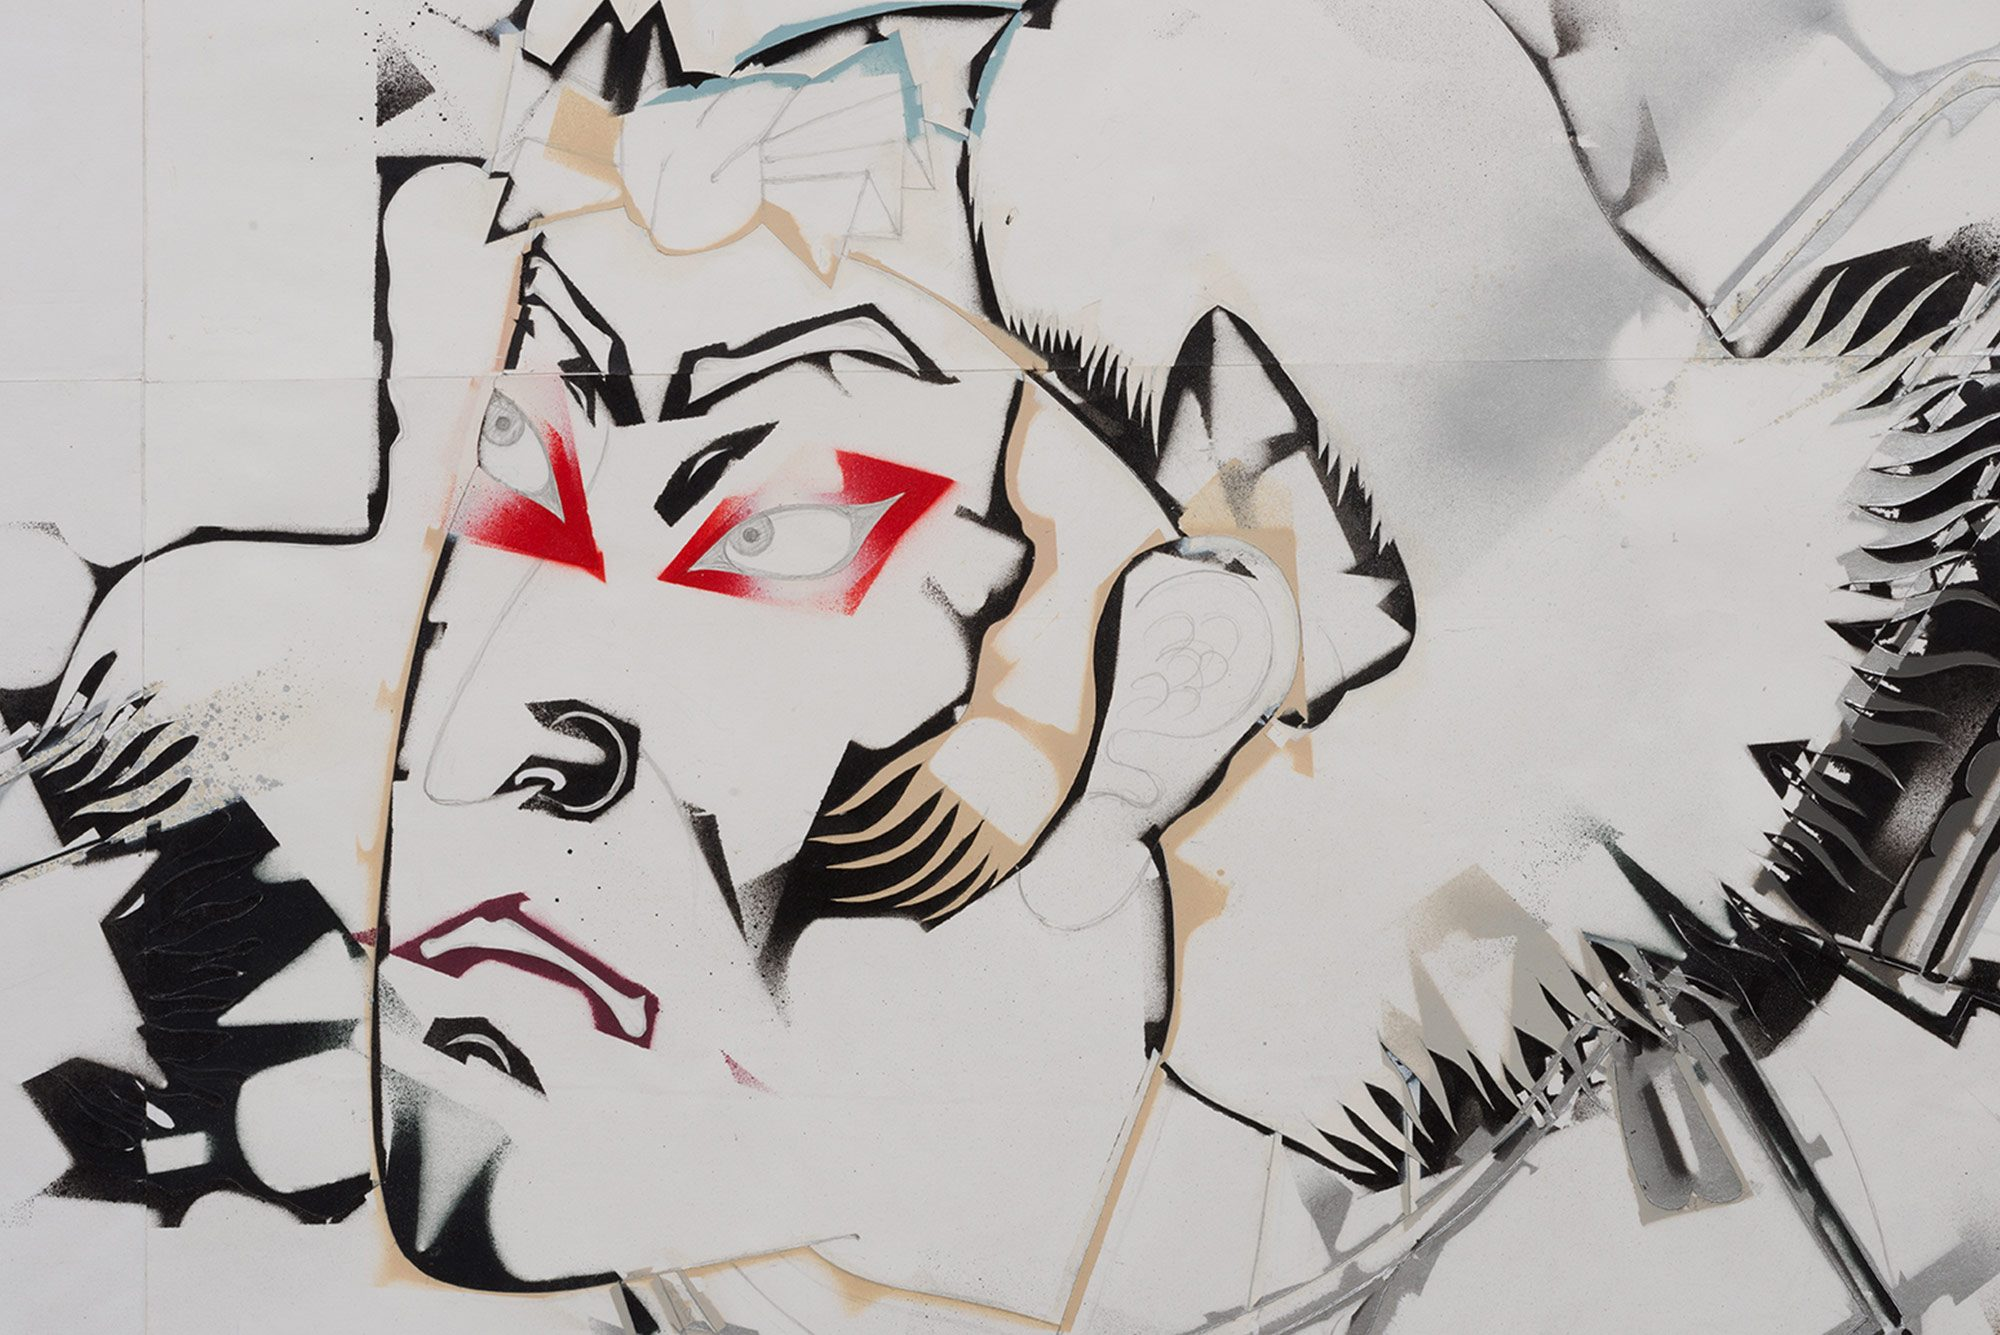 Edo-period style head of a Japanese man, his eyes fixed somewhere out of frame. Harsh and decisive strokes of spray paint pop off of pencil sketches in shiny blacks, ruby reds and subtle naked accents.